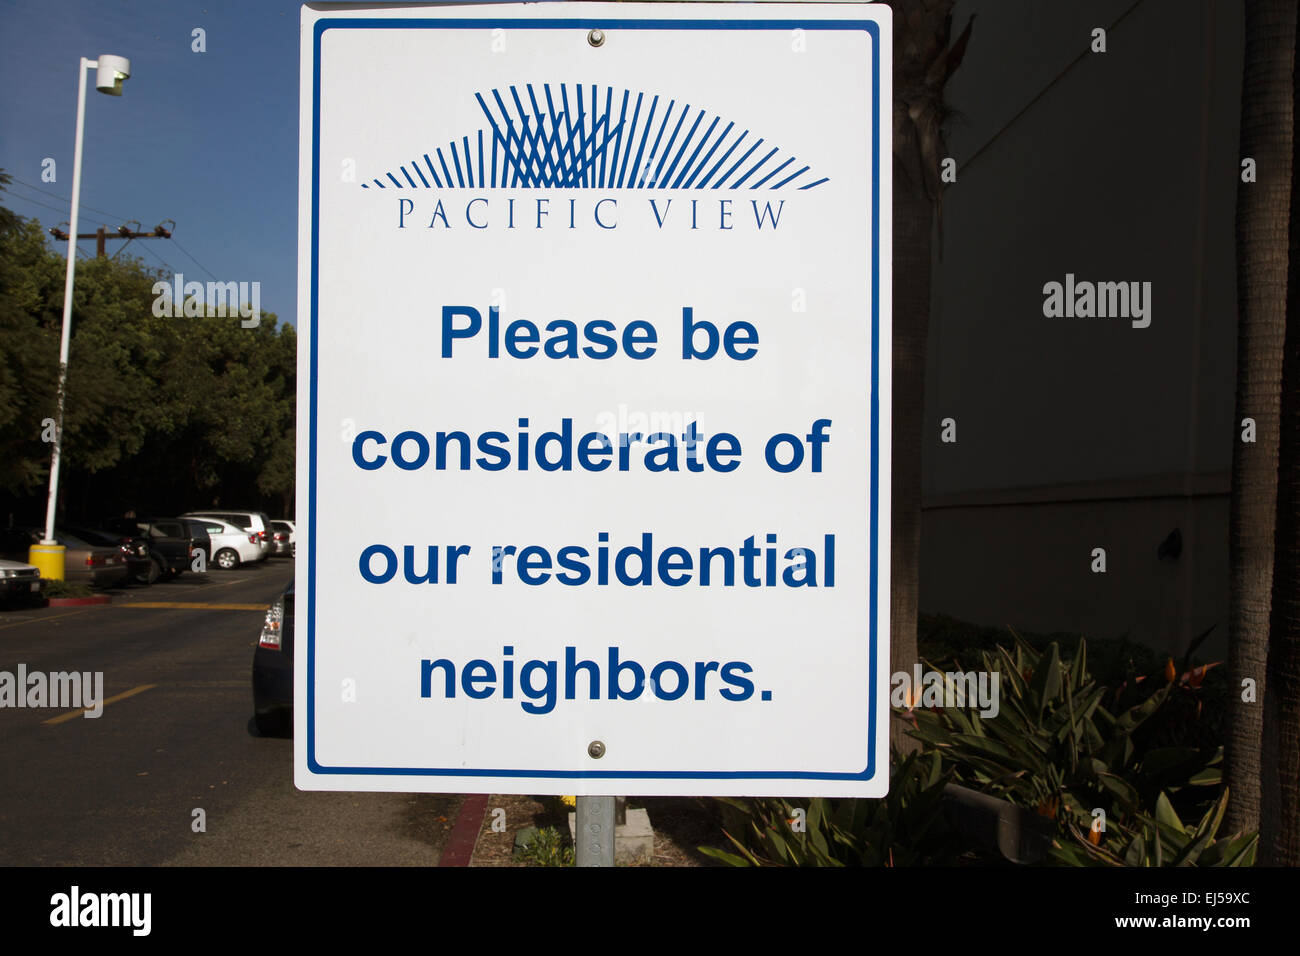 Please be considerate of residential neighbors, road sign, Ventura, California, USA - Stock Image